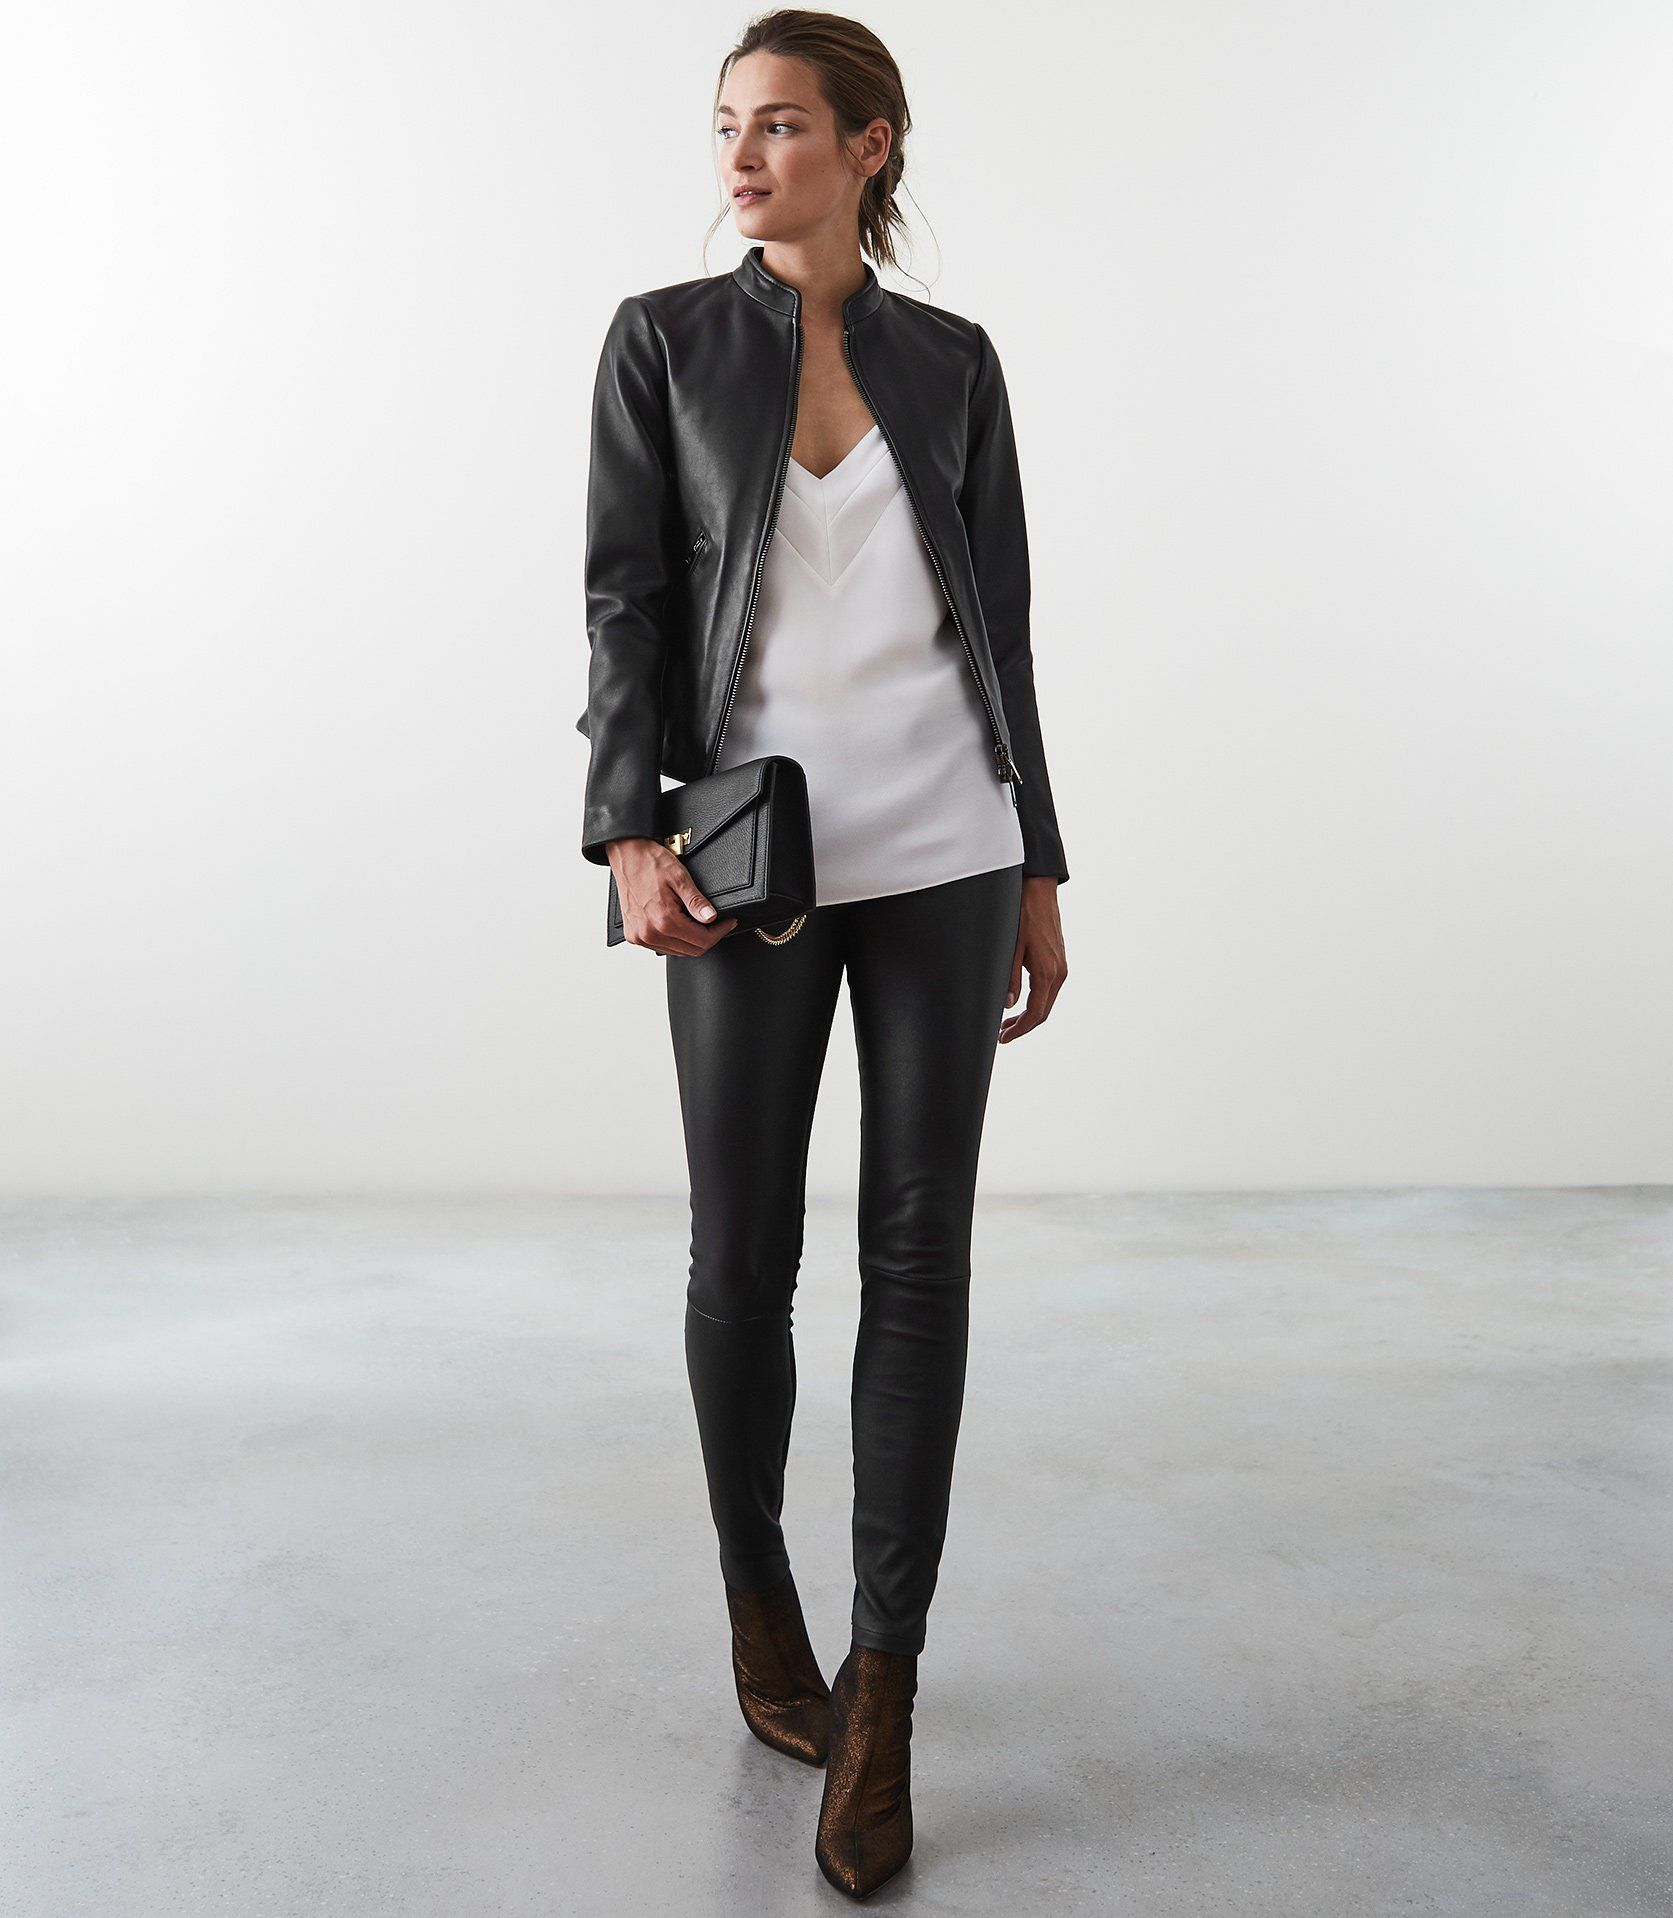 Aries Leather Jacket Reiss Leather Jackets Women Leather Jacket Outfits Jacket Outfits [ 1918 x 1673 Pixel ]